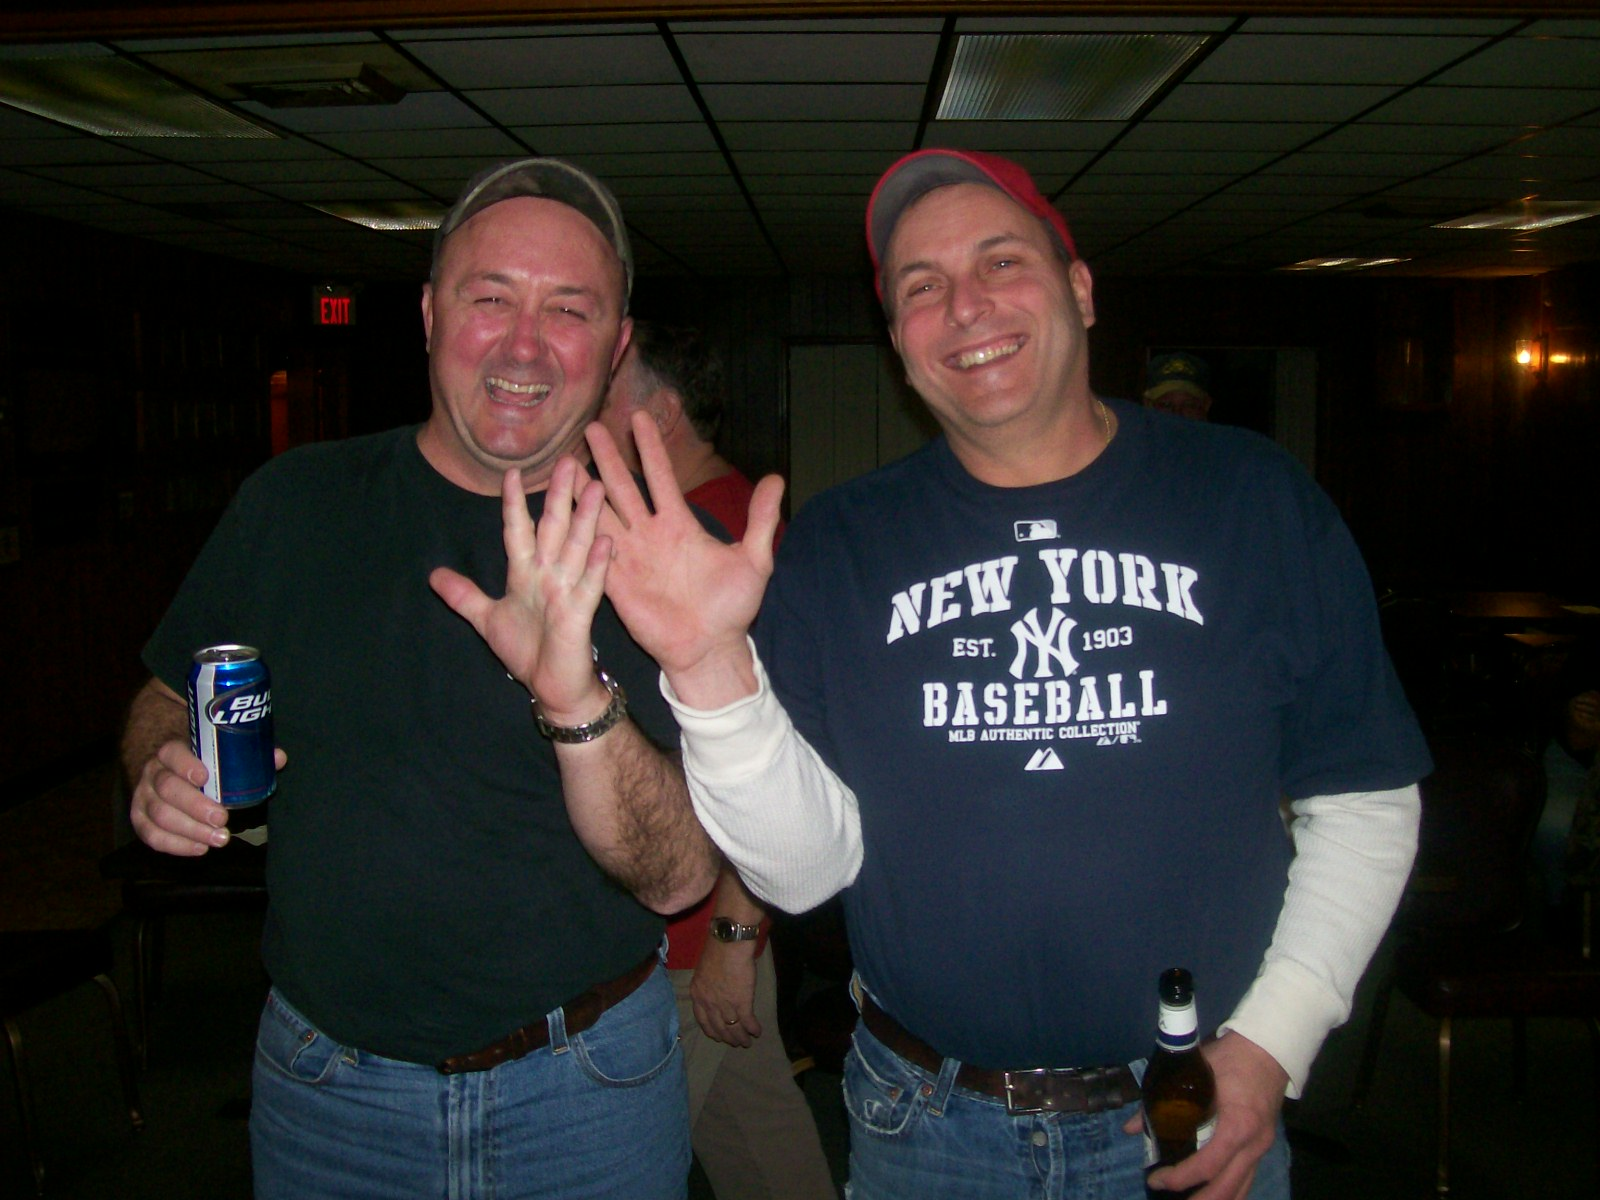 5th place doubles - Dumb and Dumber  (Mark Perdue and Marty Welch) Feb. 19, 2011